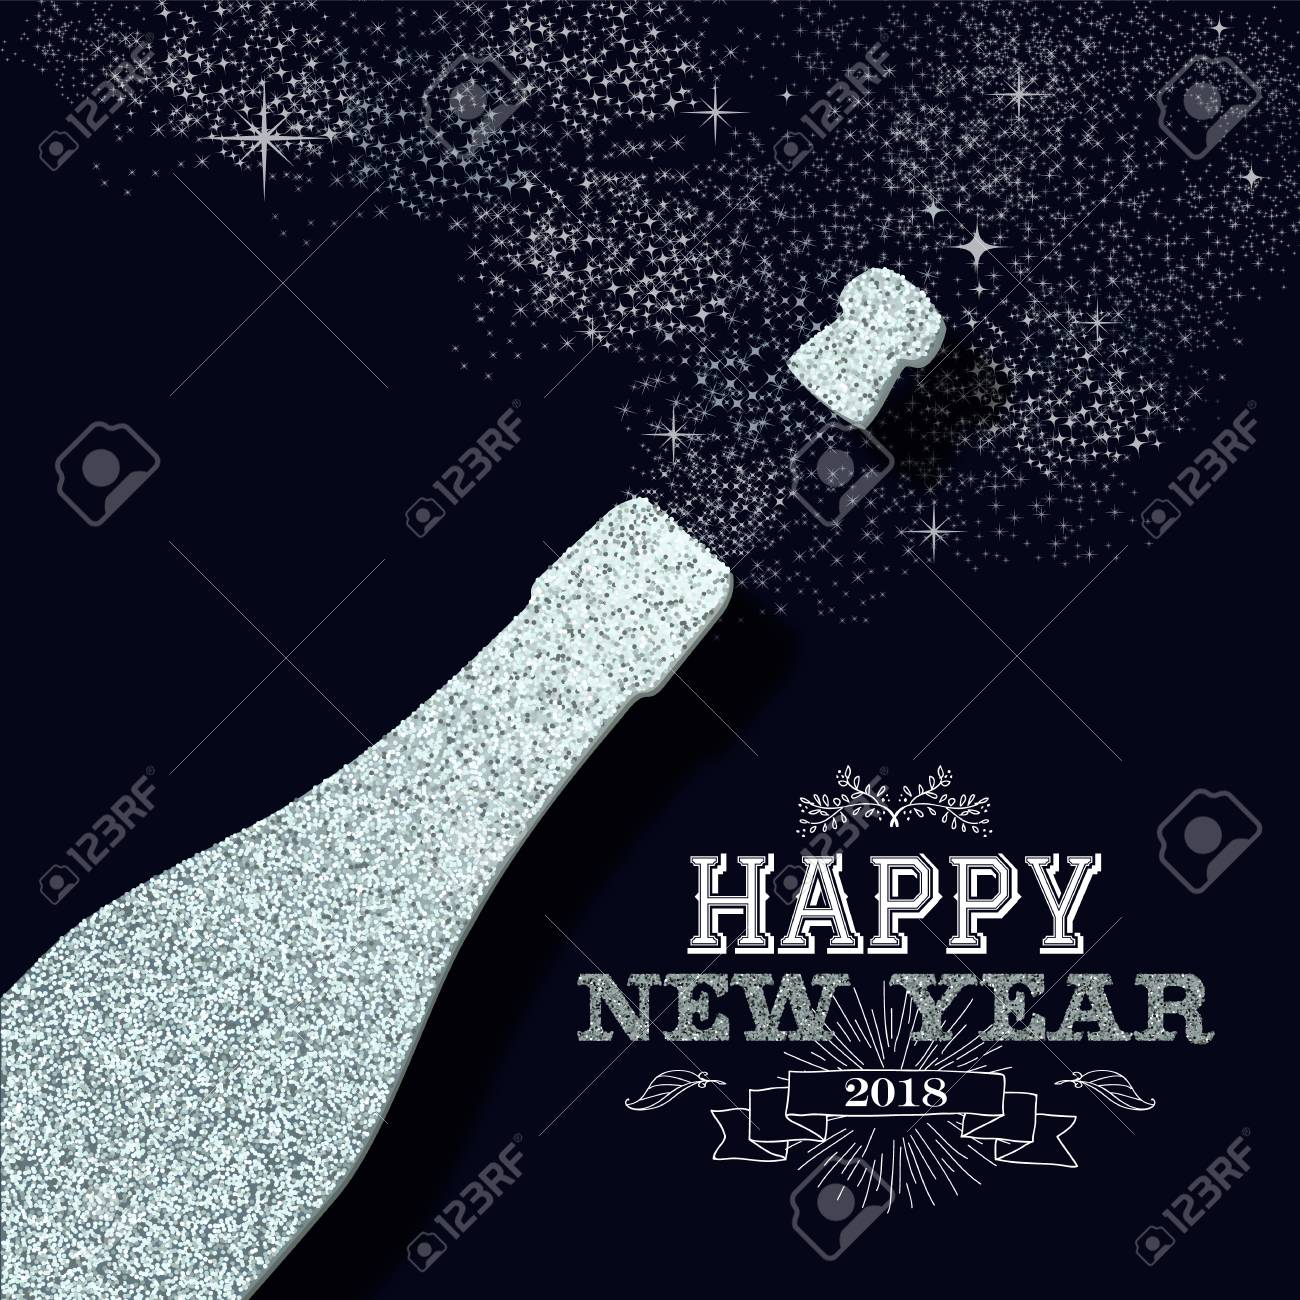 happy new year 2018 luxury champagne bottle made of silver glitter sparkle ideal for greeting